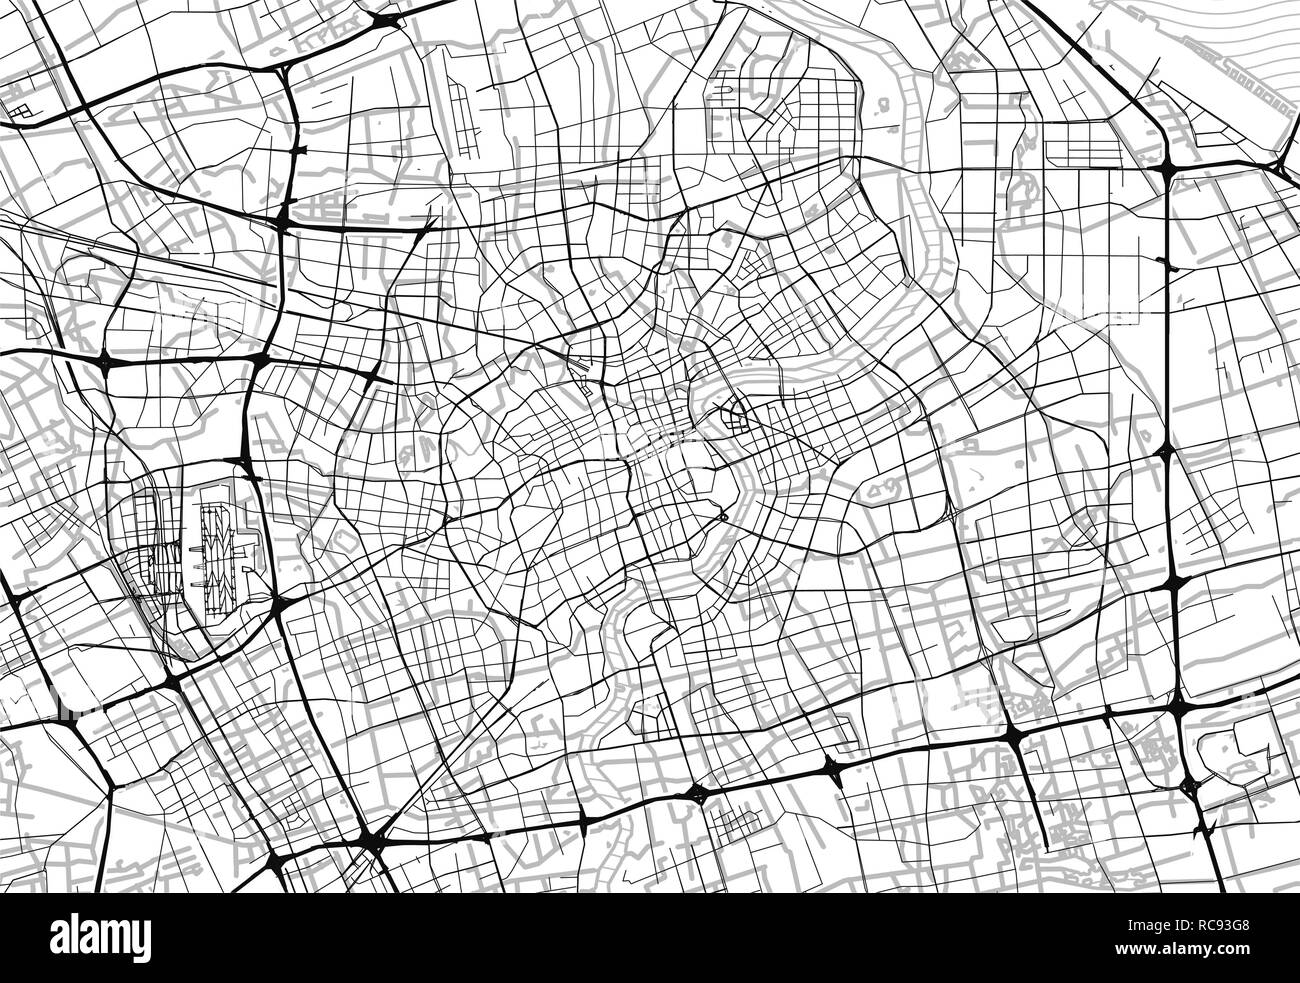 Area map of Shanghai, China. This artmap of Shanghai contains geography lines for land mass, water, major and minor roads. - Stock Vector